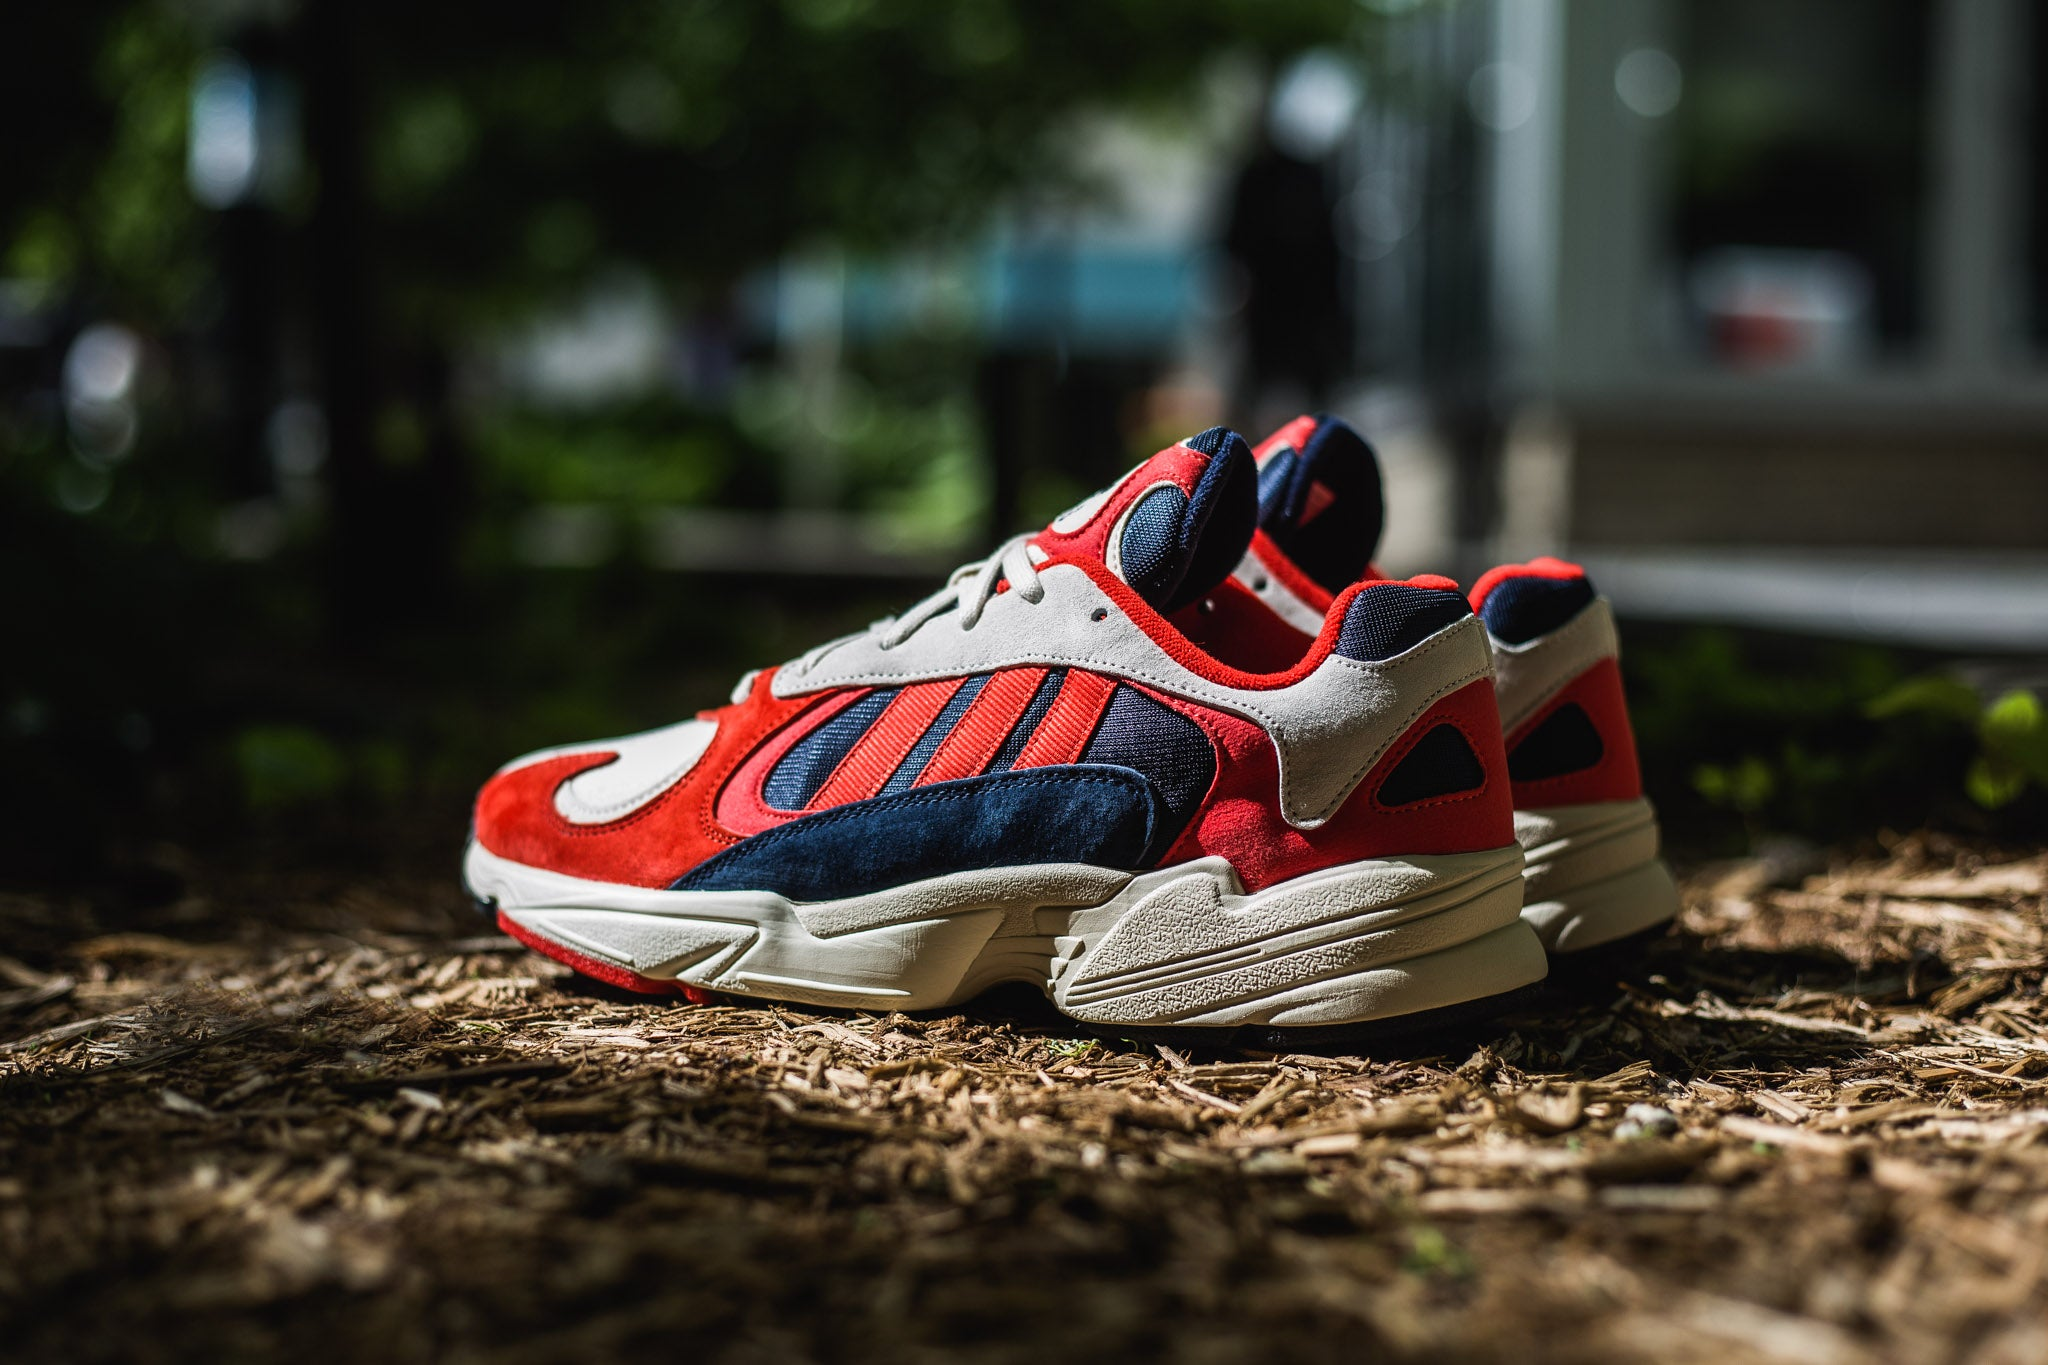 adidas Yung-1 'Orange/Collegiate Navy' 06.21.18